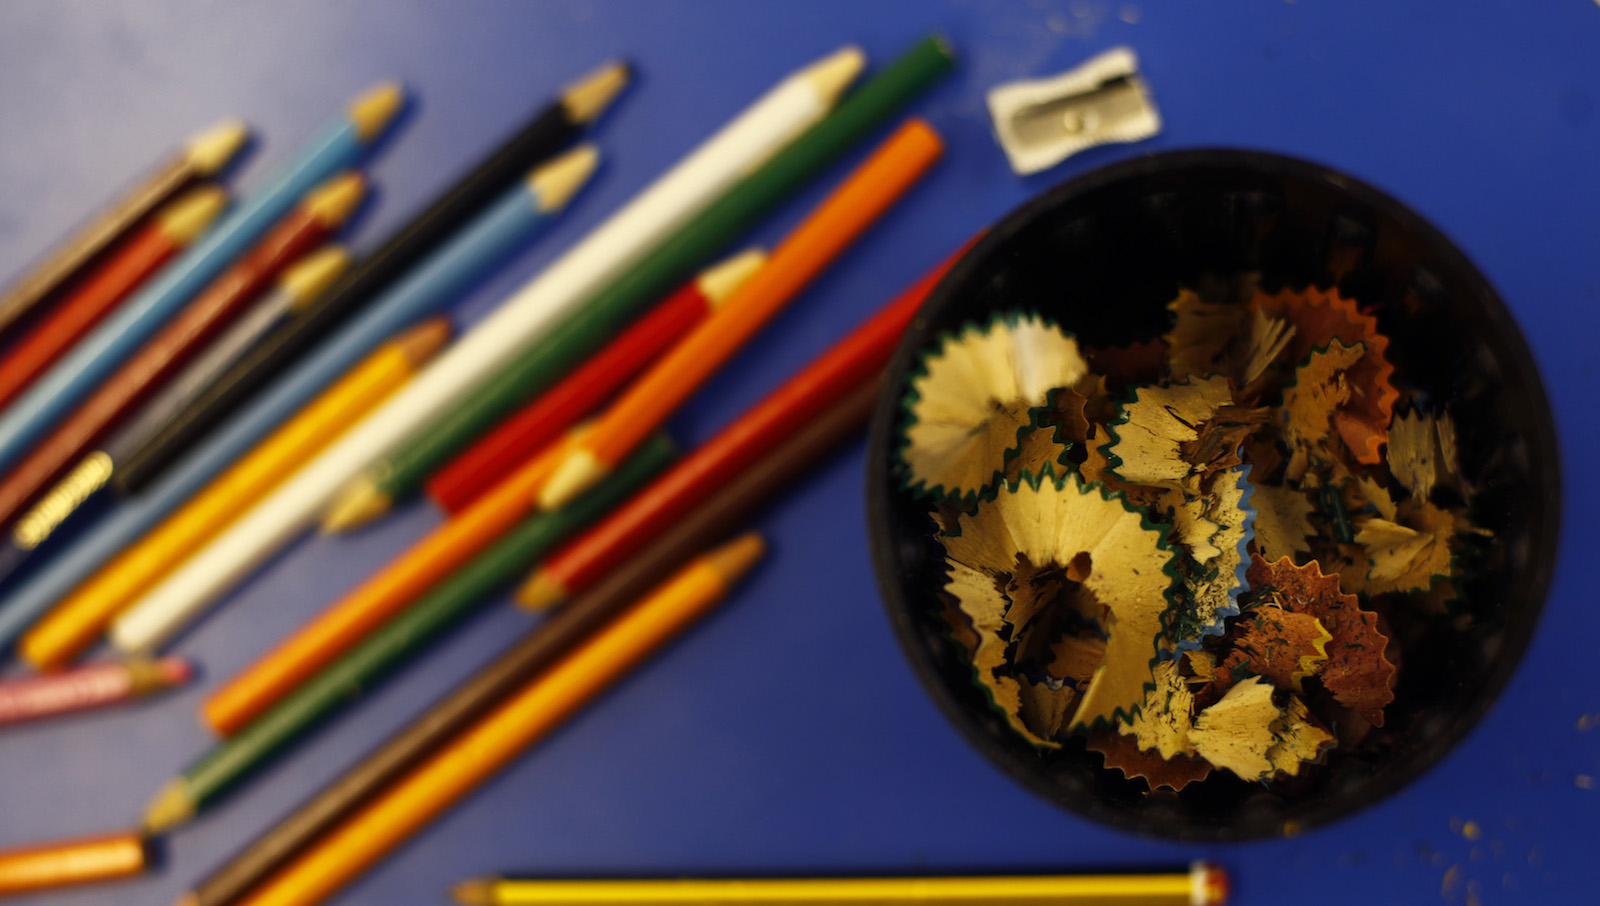 Pencils and pencil shavings are seen on a desk at Watlington  Primary School in Watlington, southern England